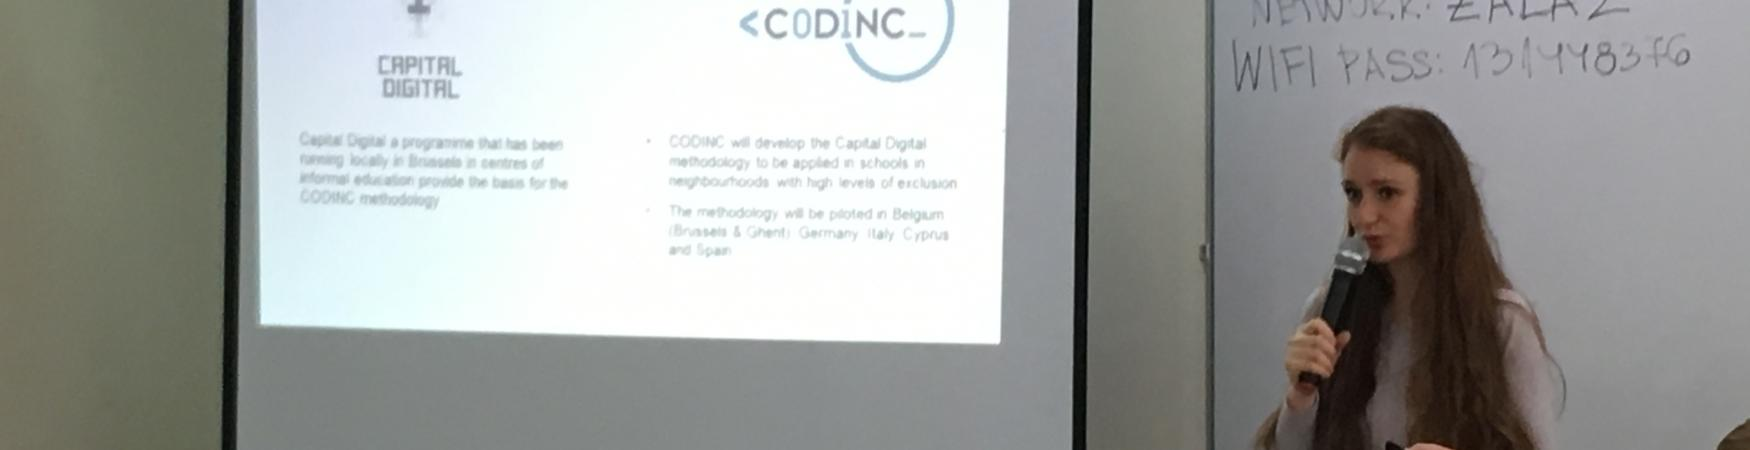 Gabriela Ruseva presenting the #CodincEU and Capital Digital projects at the ET2020 working group